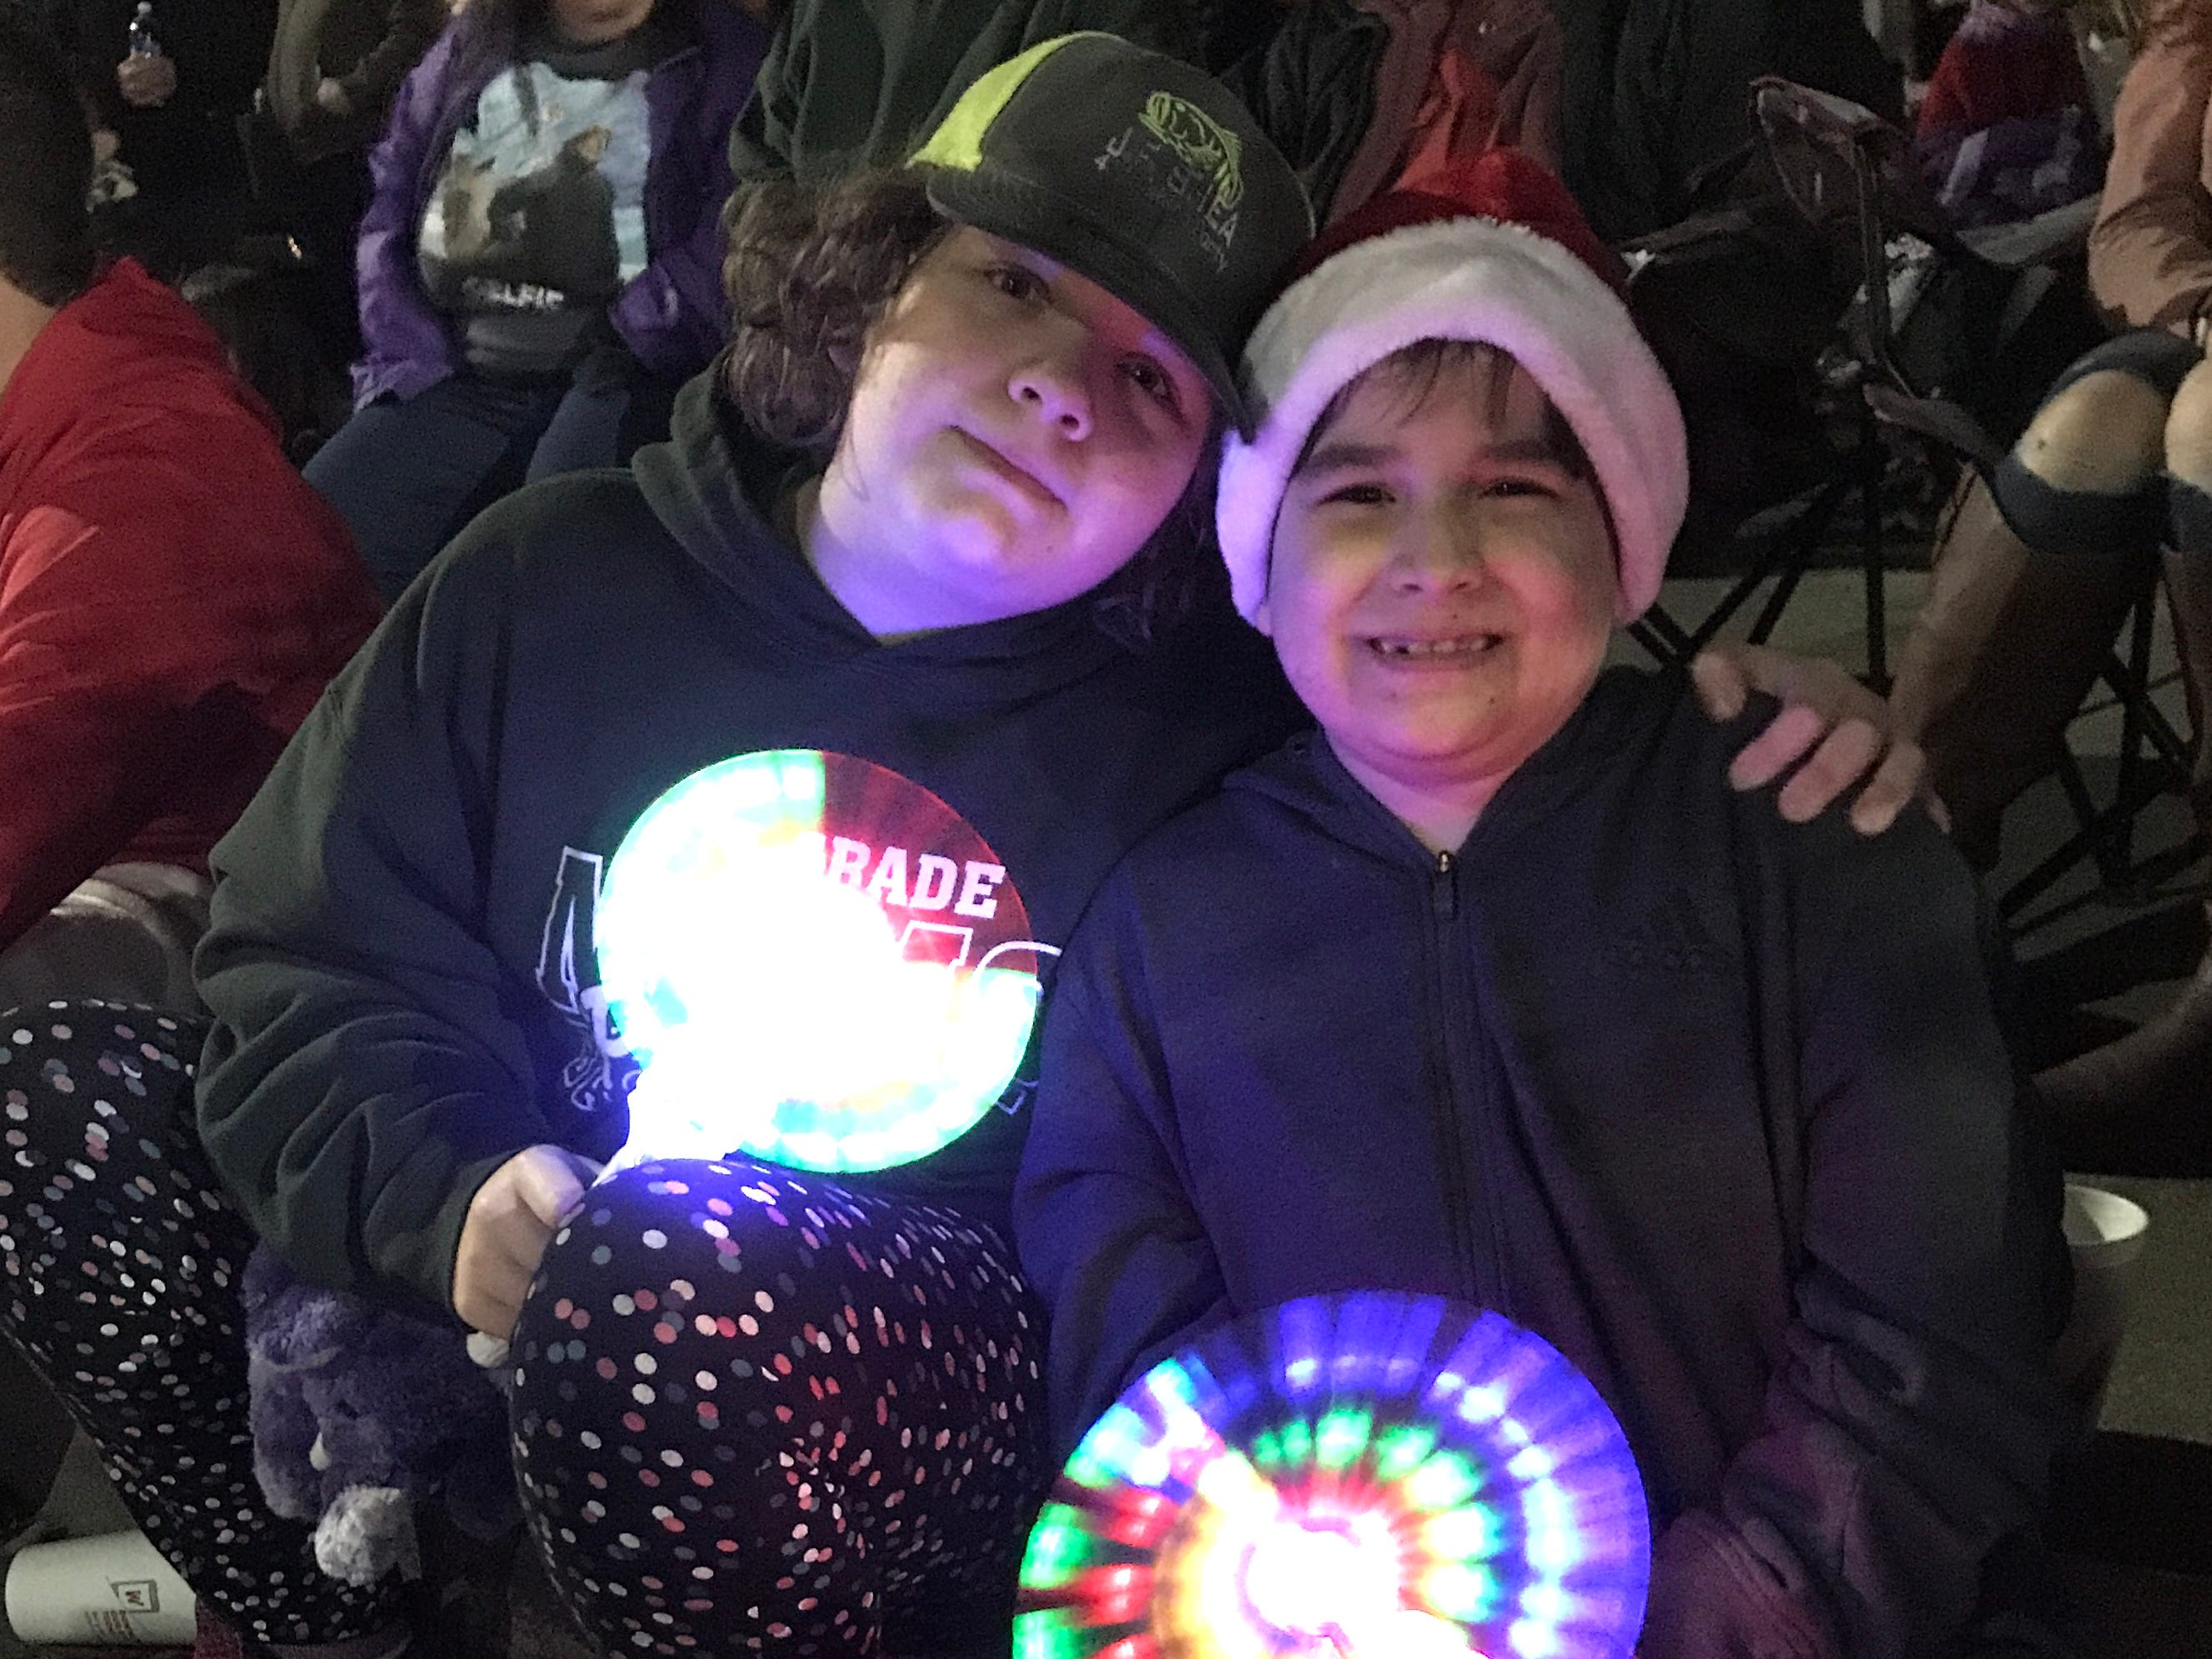 Elicia Wears, left, and her brother, Govanni Wears, share a moment during Saturday's 2018 Lighted Christmas Parade in downtown Redding.